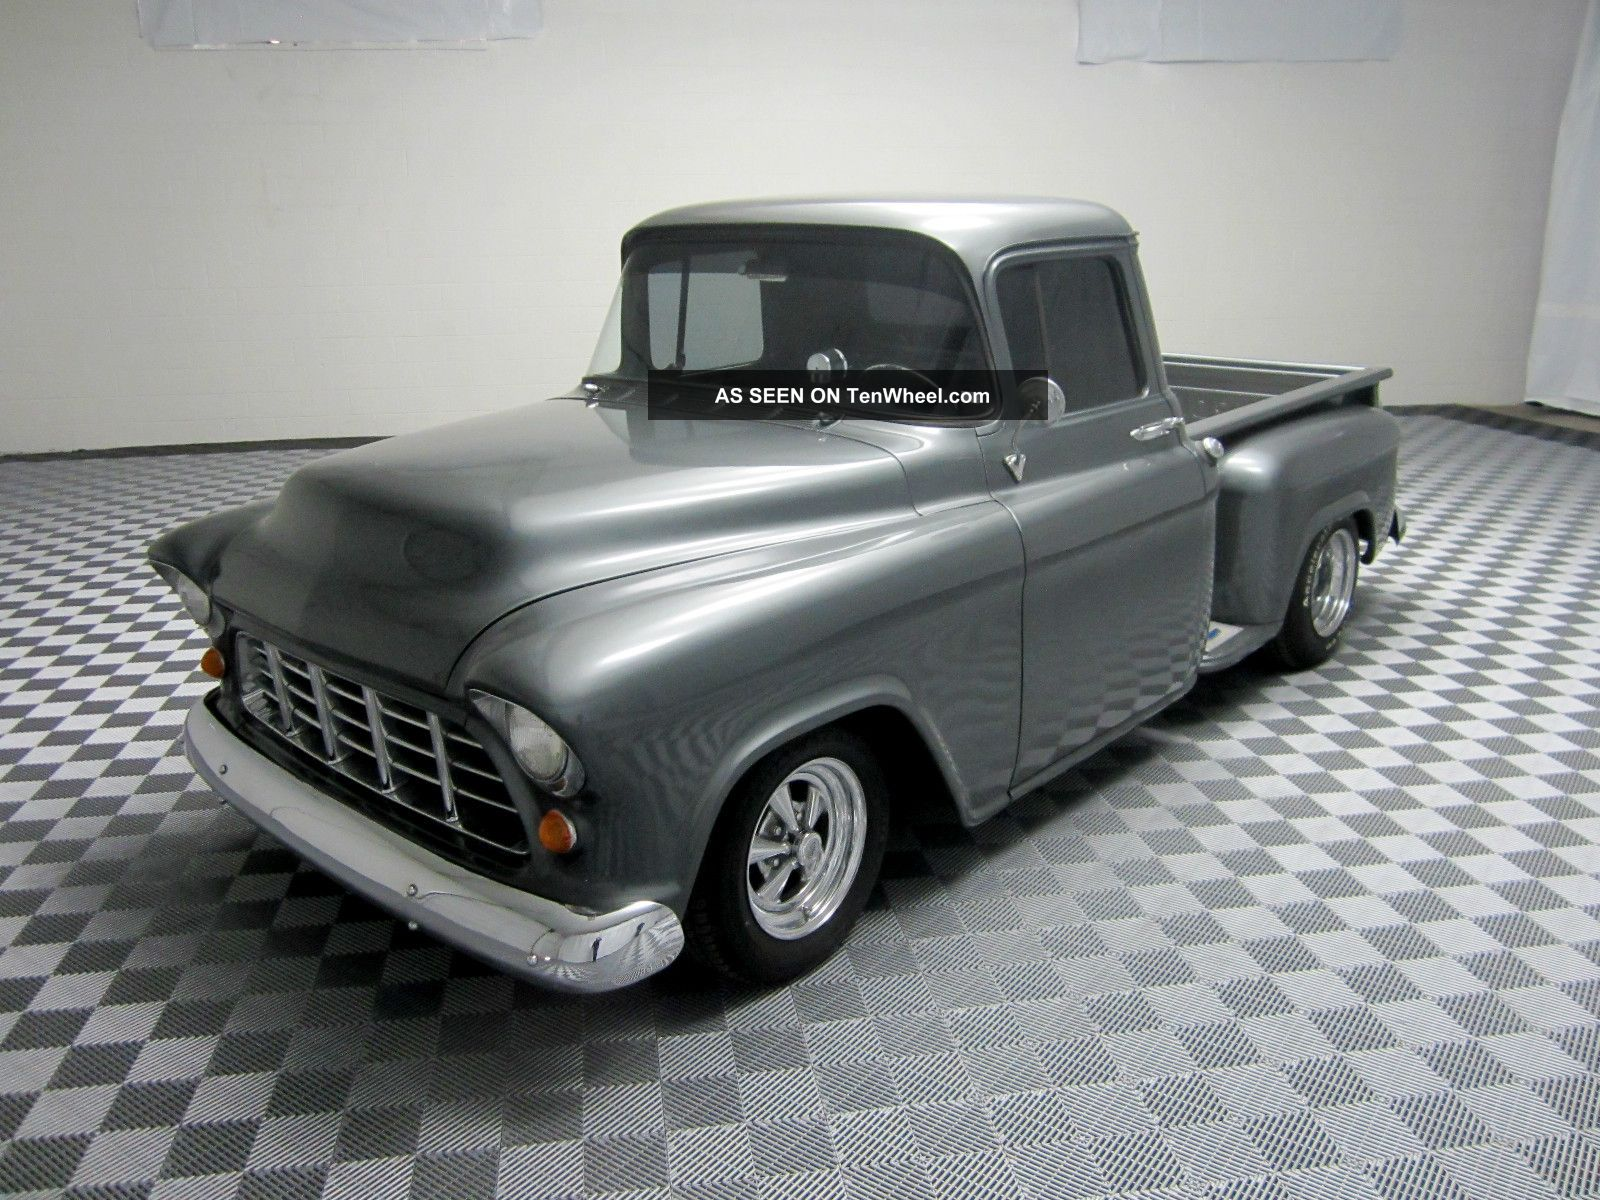 1955 Chevy Custom Steet Rod Pickup Truck Frame Off Restoration V8 Many Upgrades Other Pickups photo